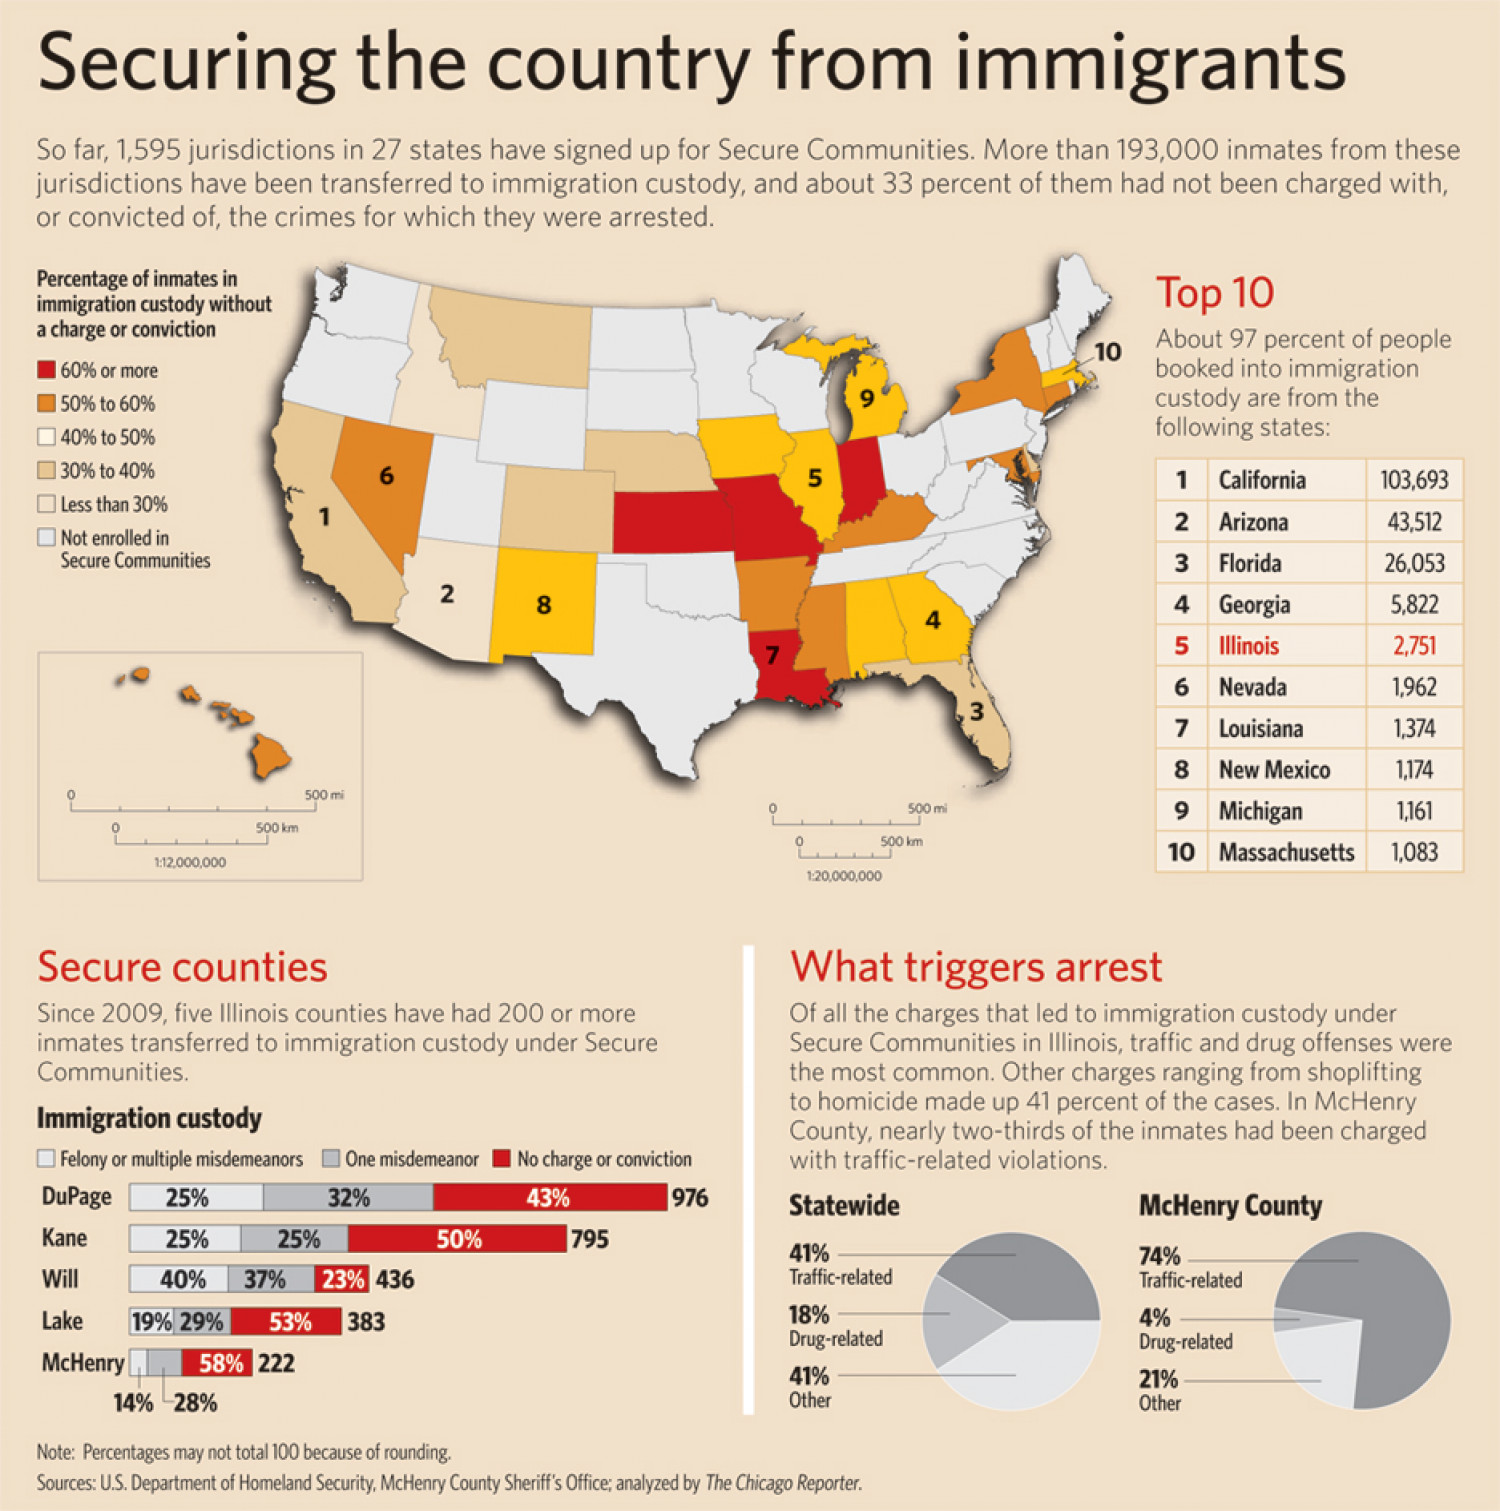 Securing the Country from Immigrants Infographic